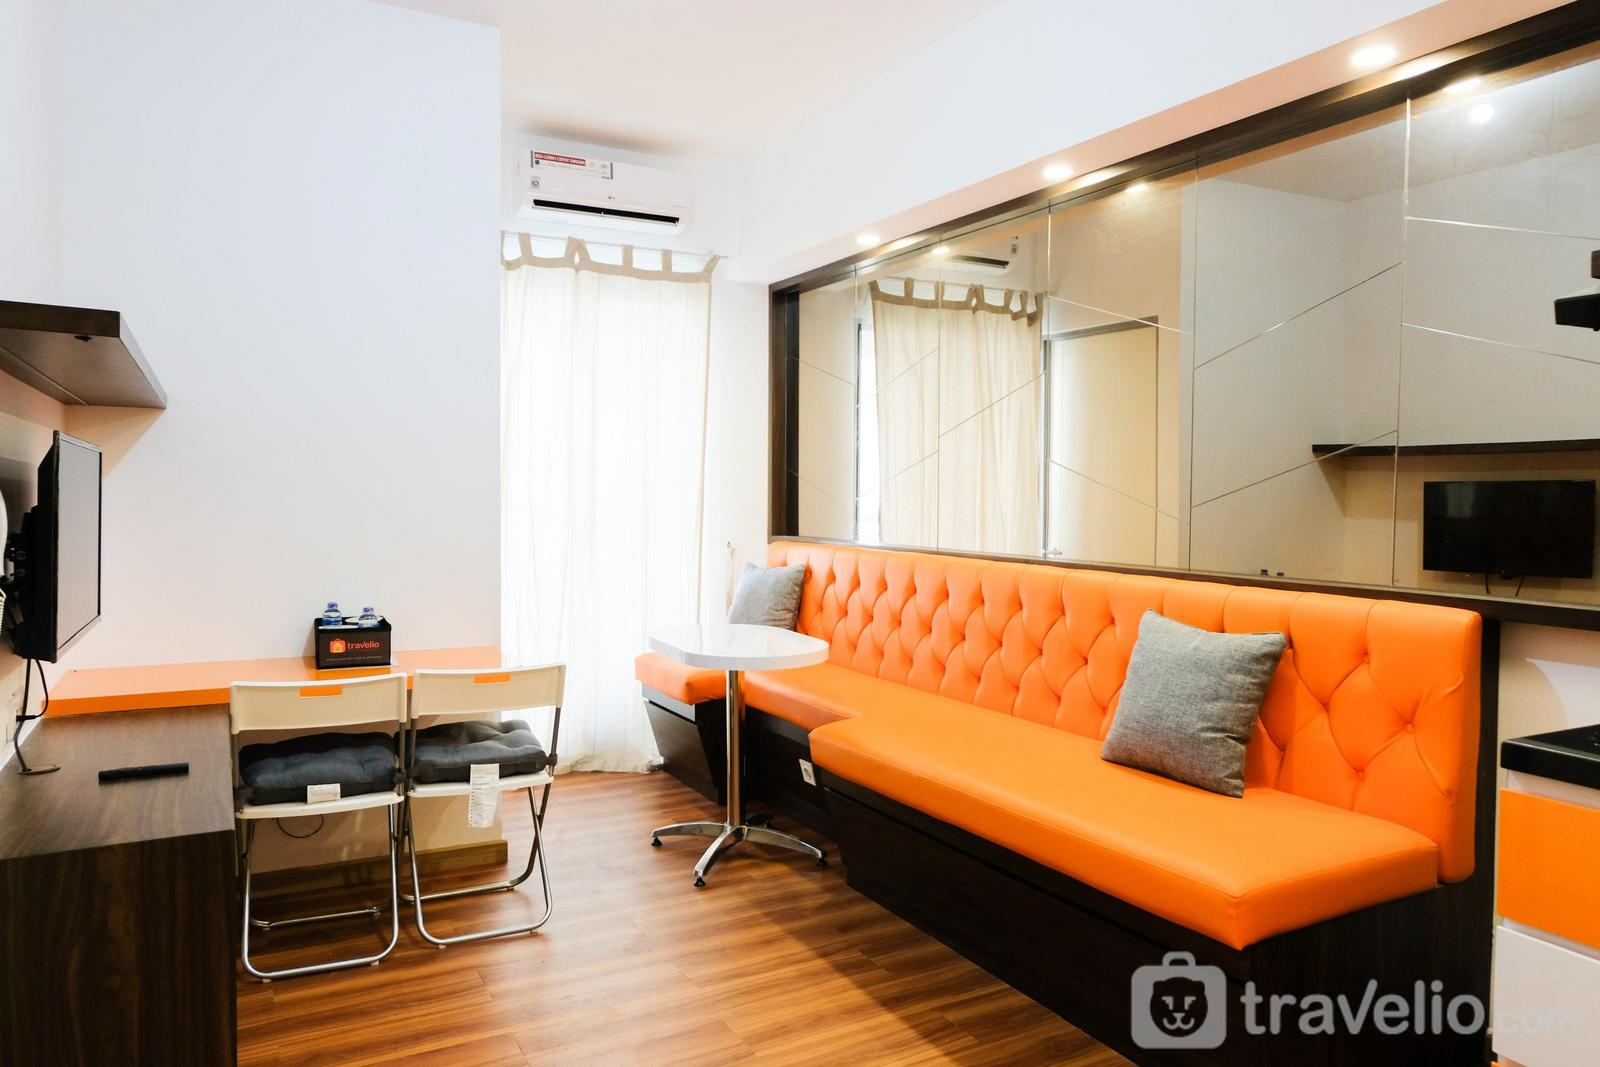 M Town Residence - Fully Furnished 2BR Apartment at M-Town Residence By Travelio